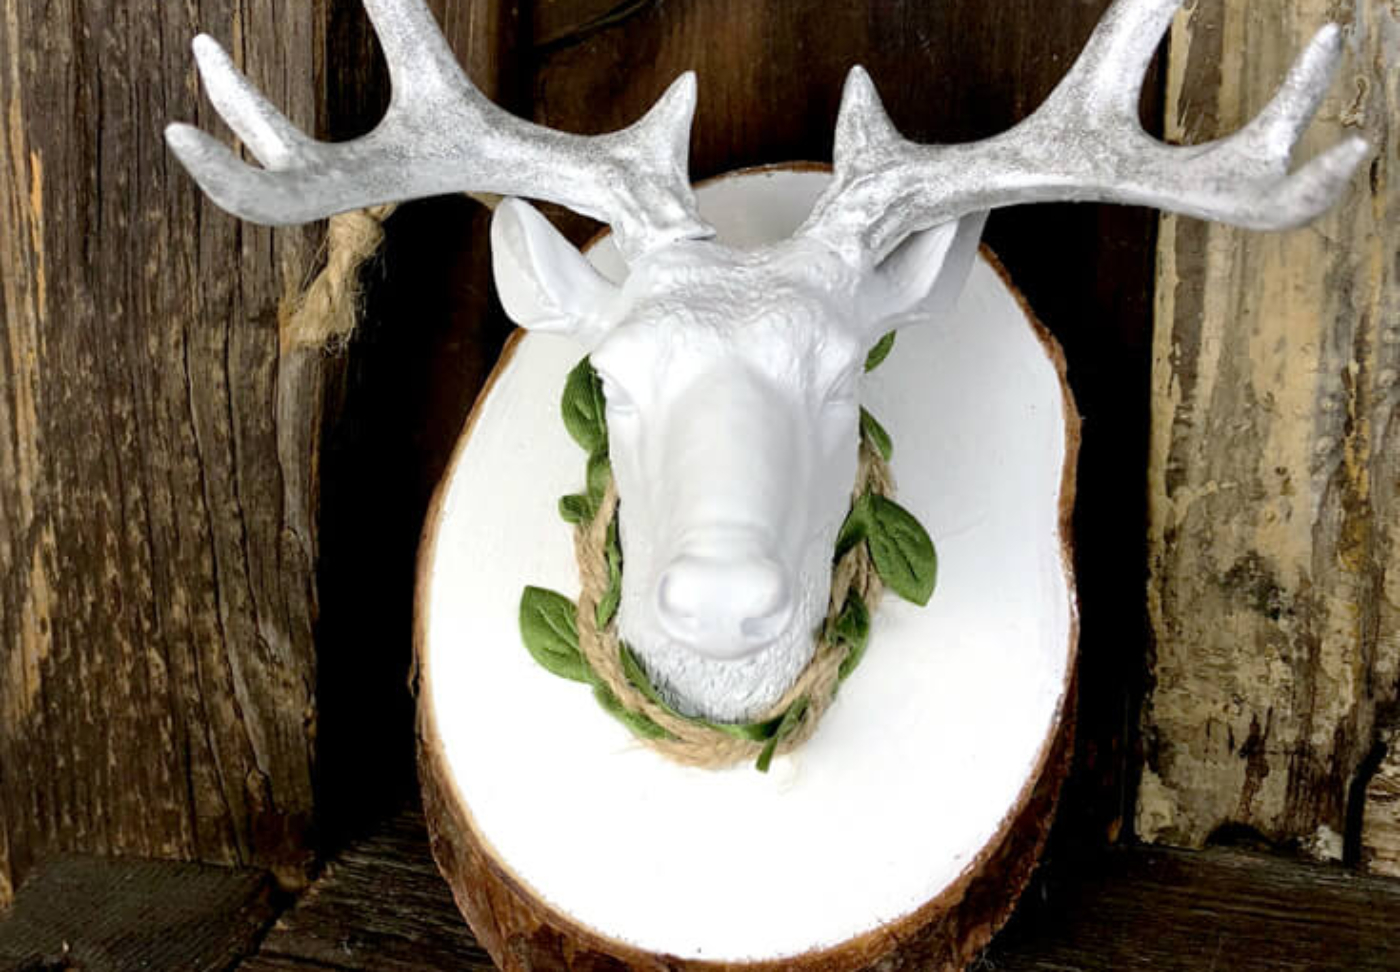 FB-Finished-deer-ornament-DIY-mounted-deer-head-ornament-halfpintpartydesign.com-christmas-decor